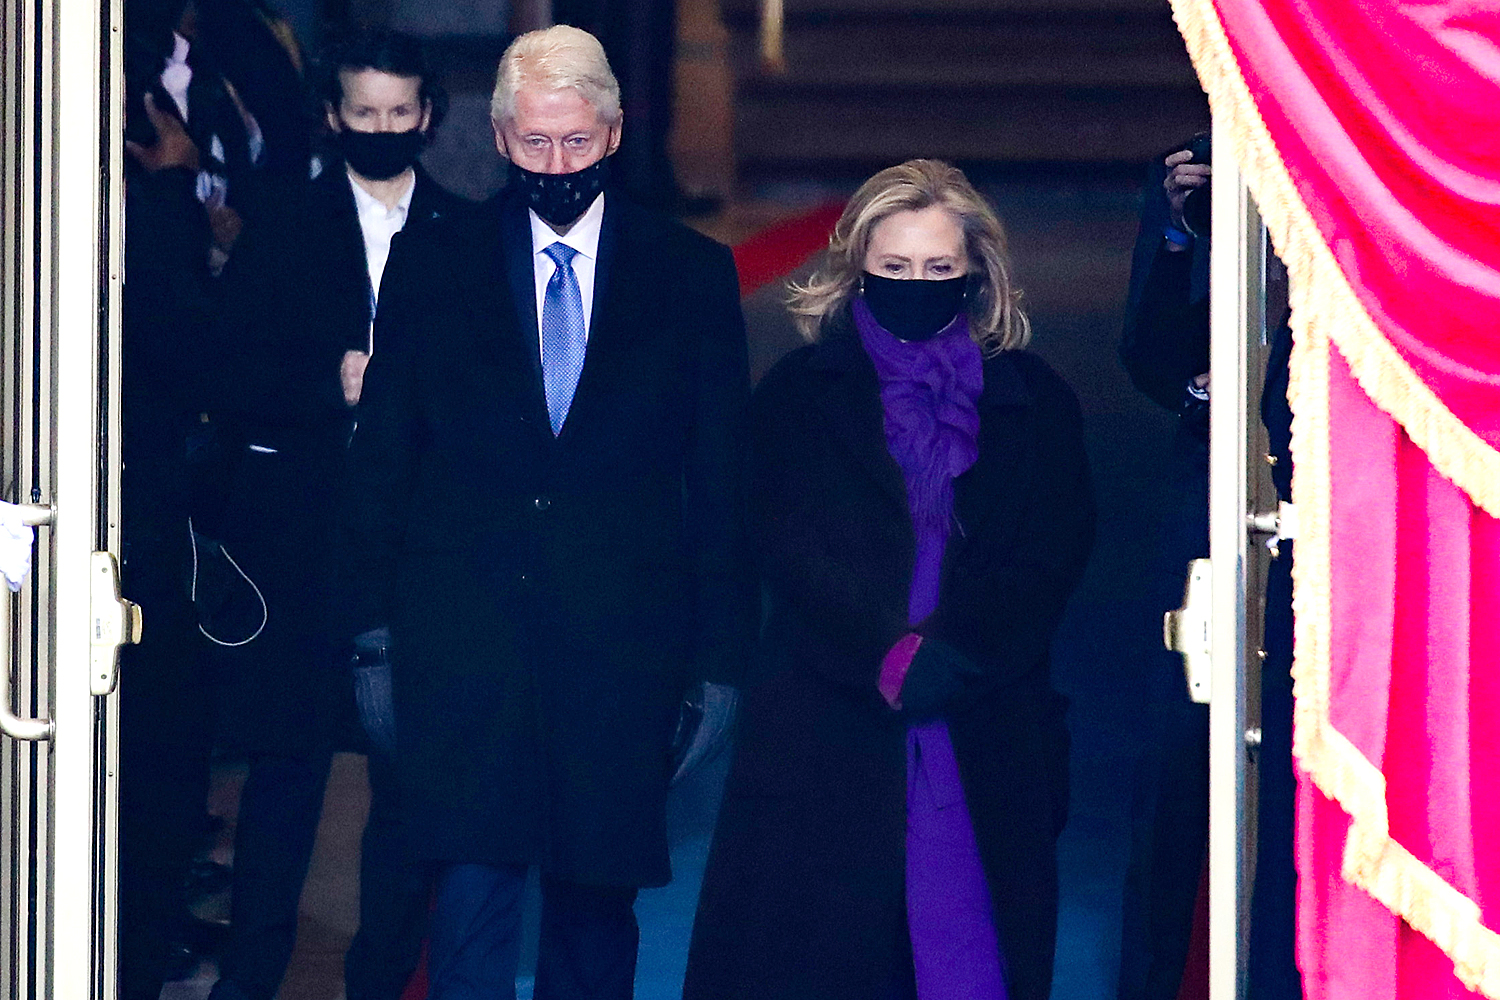 Former U.S. President Bill Clinton arrives with former Secretary of State Hillary Clinton to the inauguration of U.S. President-elect Joe Biden